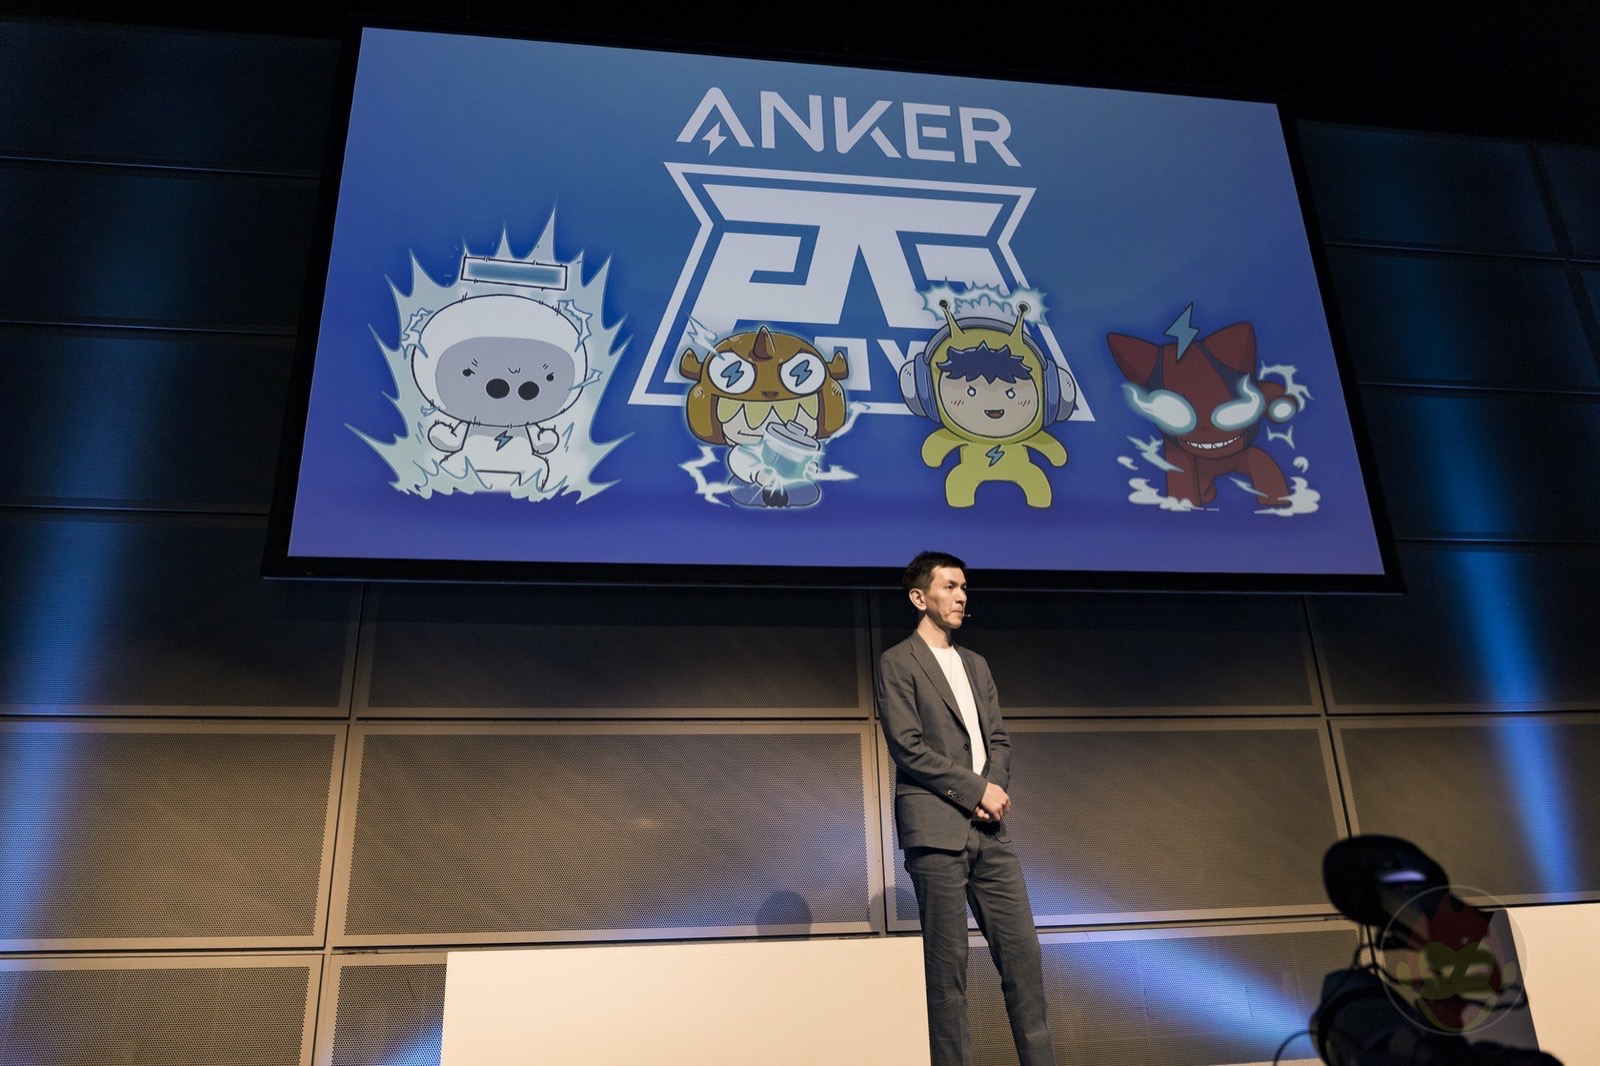 Anker-Power-Conference-19-Summer-New-Products-and-services-01.jpg